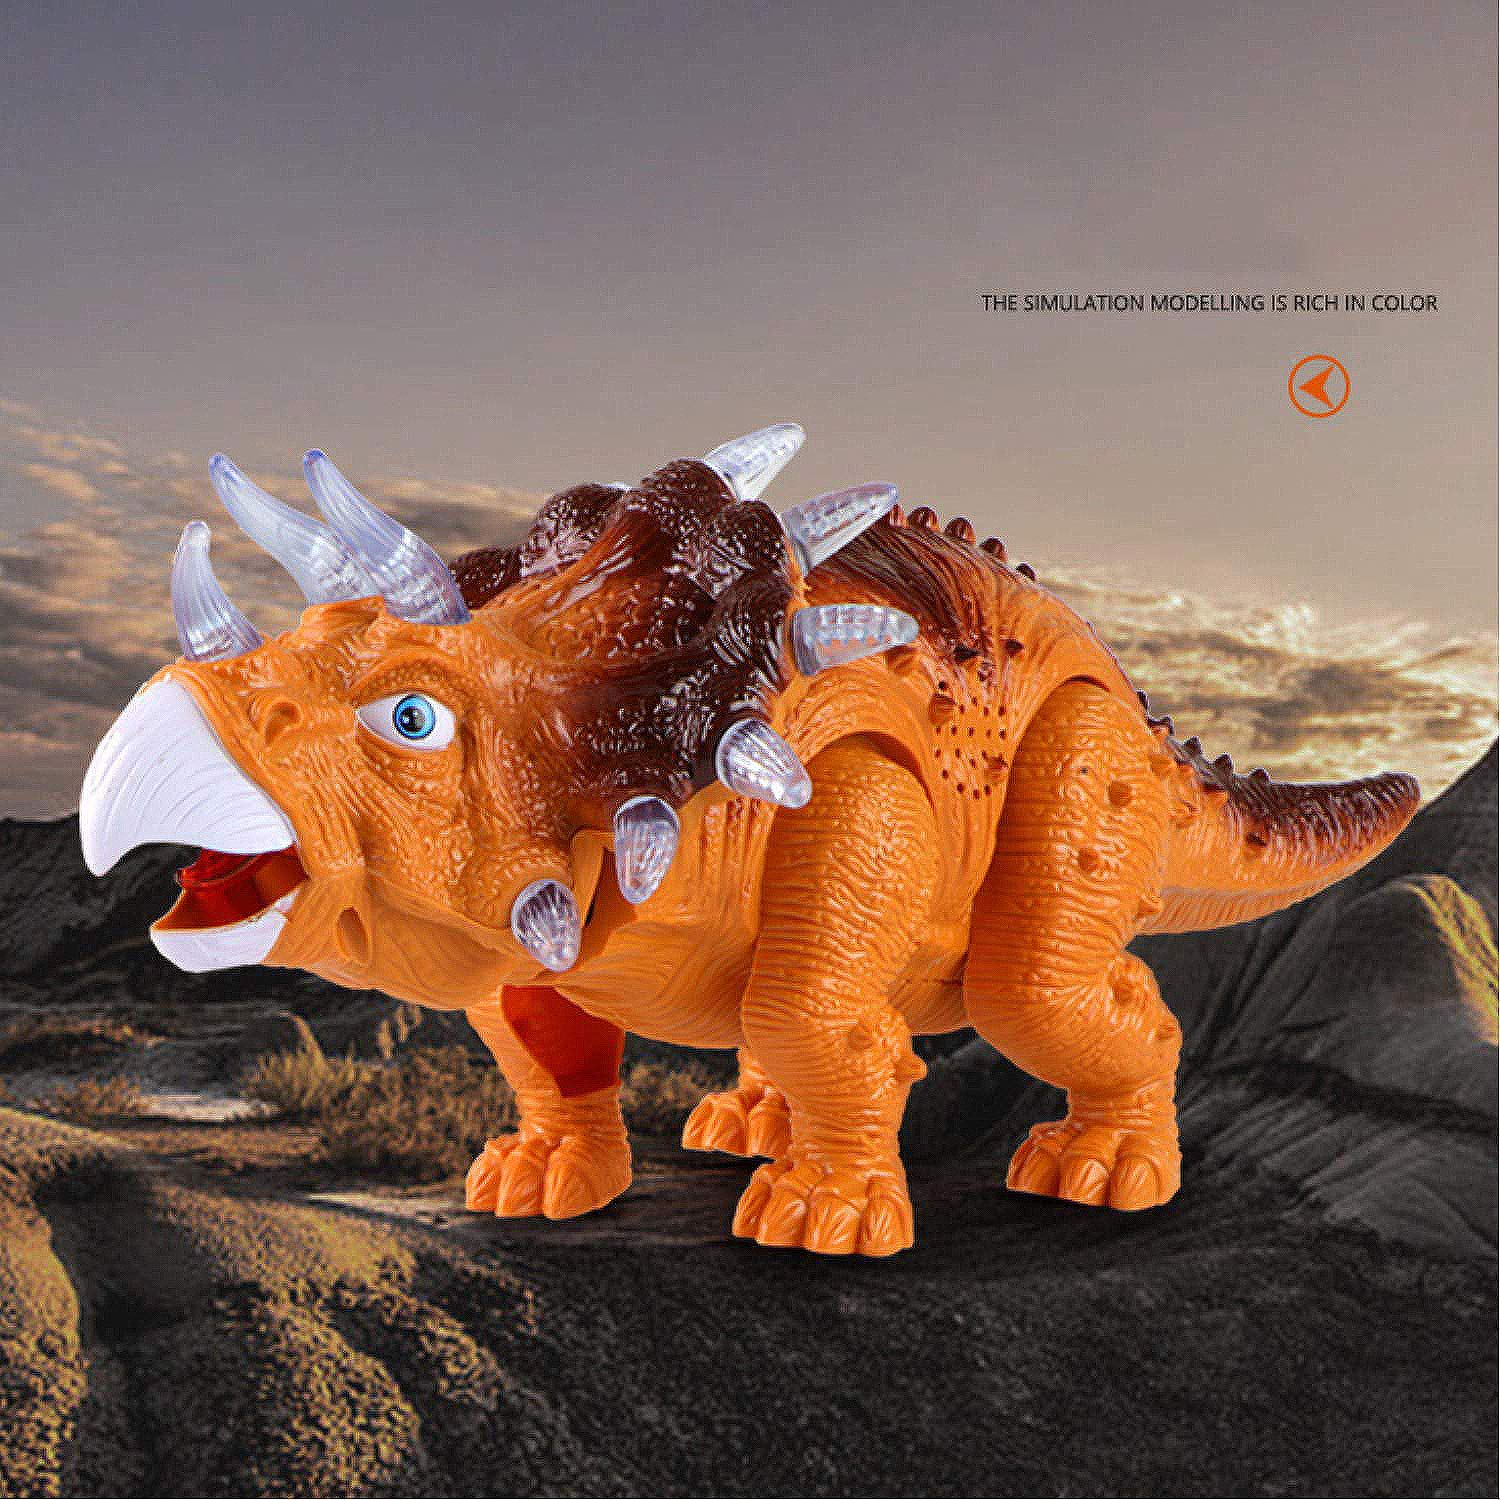 WomToy Walking Dinosaur Toys, Triceratops Dinosaur Toy Figure for Boys & Girls for Kids with Amazing Roar Sounds, Lights & Movement by WomToy (Image #3)